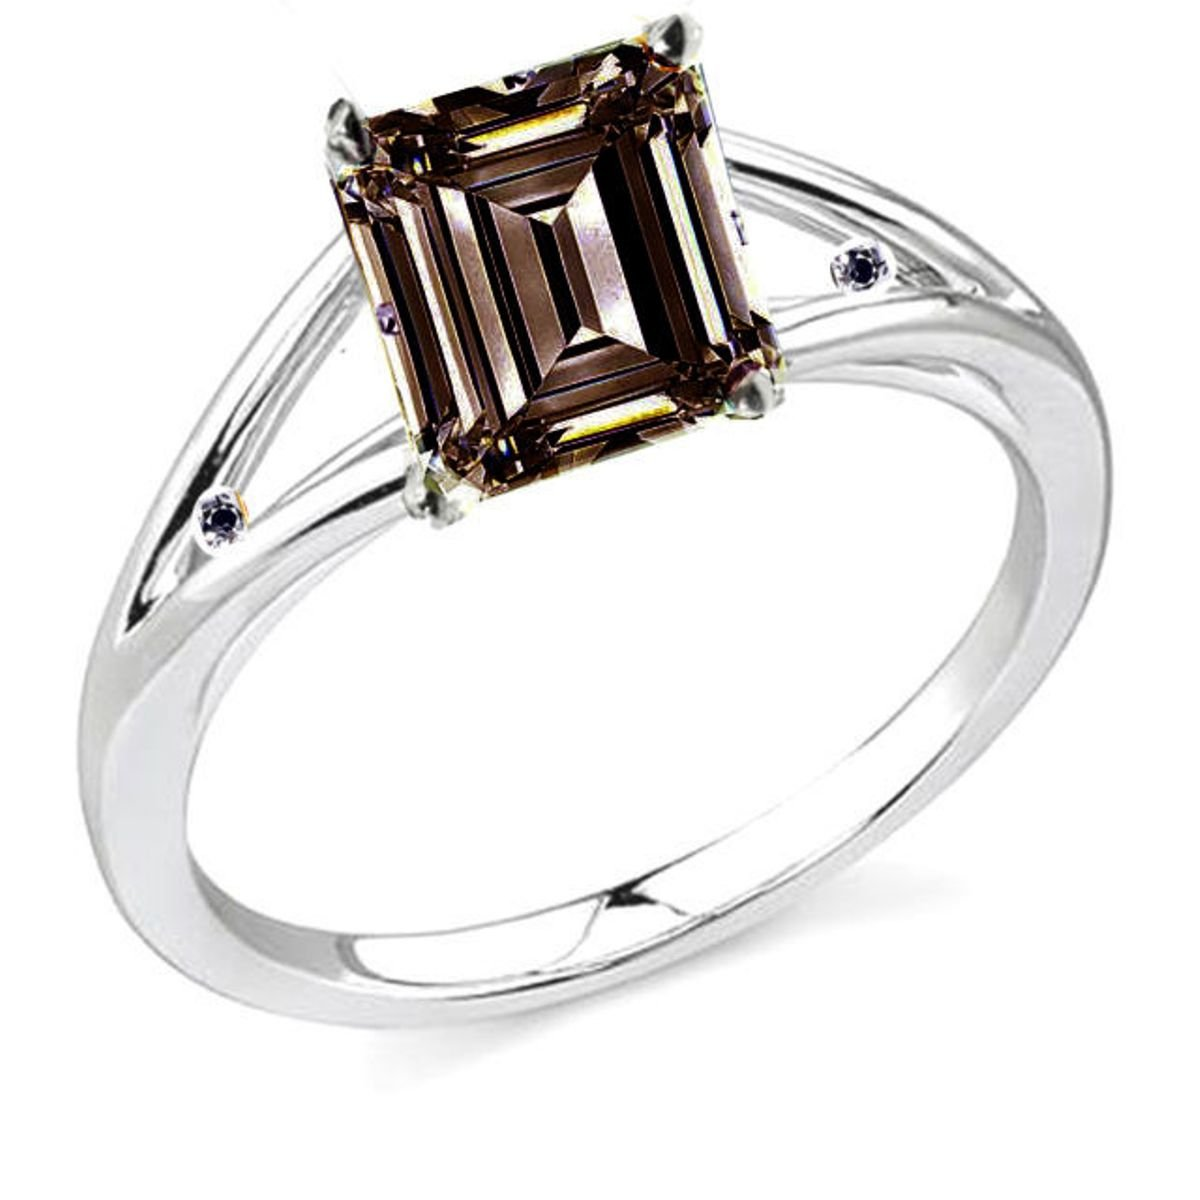 RINGJEWEL 5.31 ct SI2 Emerald Moissanite Solitaire Silver Plated Engagement Ring Brown Color Size 7